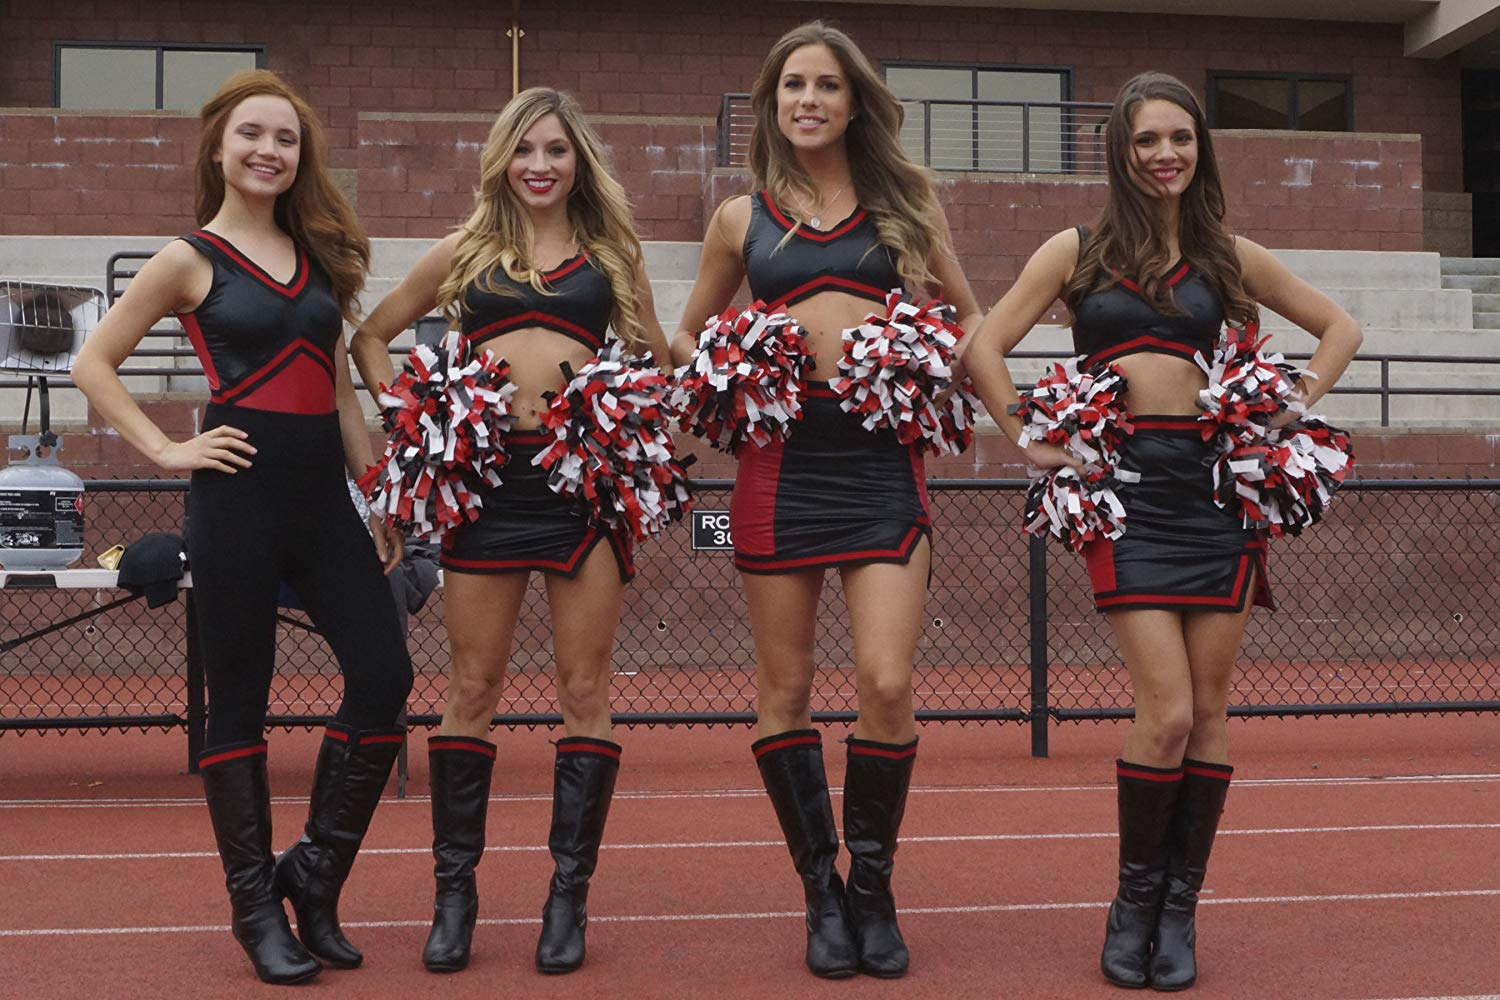 Amanda Grace Benitez, Brooke Butler, Reanin Johannink and Caitlin Stasey in All Cheerleaders Die (2013)